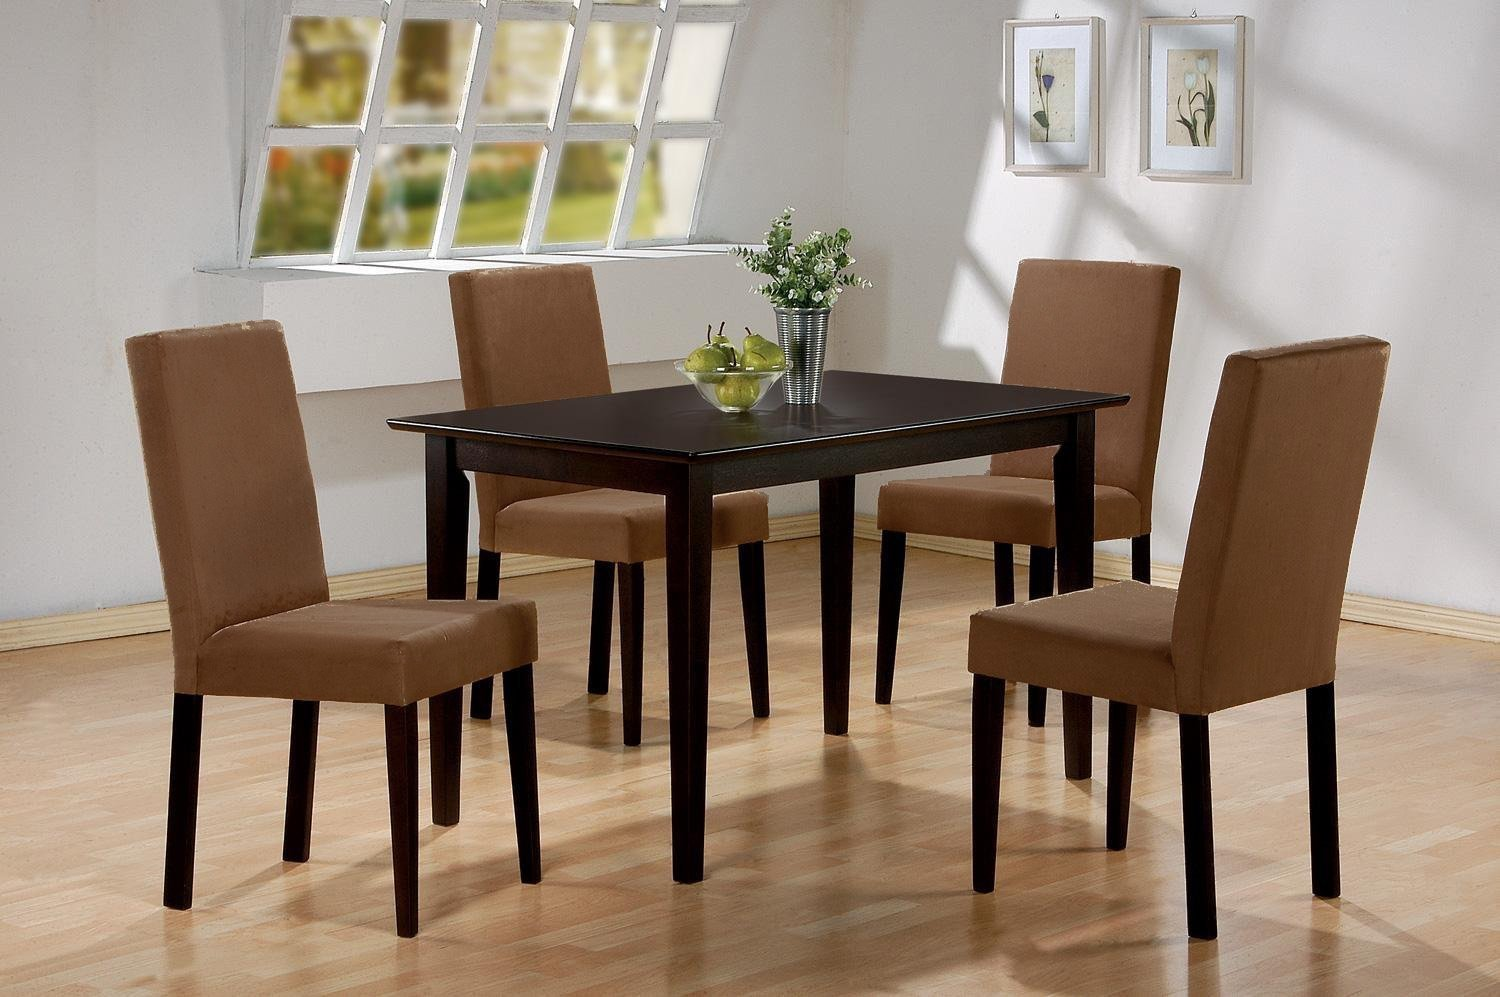 852ae233134 5 PC Espresso Brown 4 Person Table and Chairs Brown Dining Dinette - Espresso  Brown and